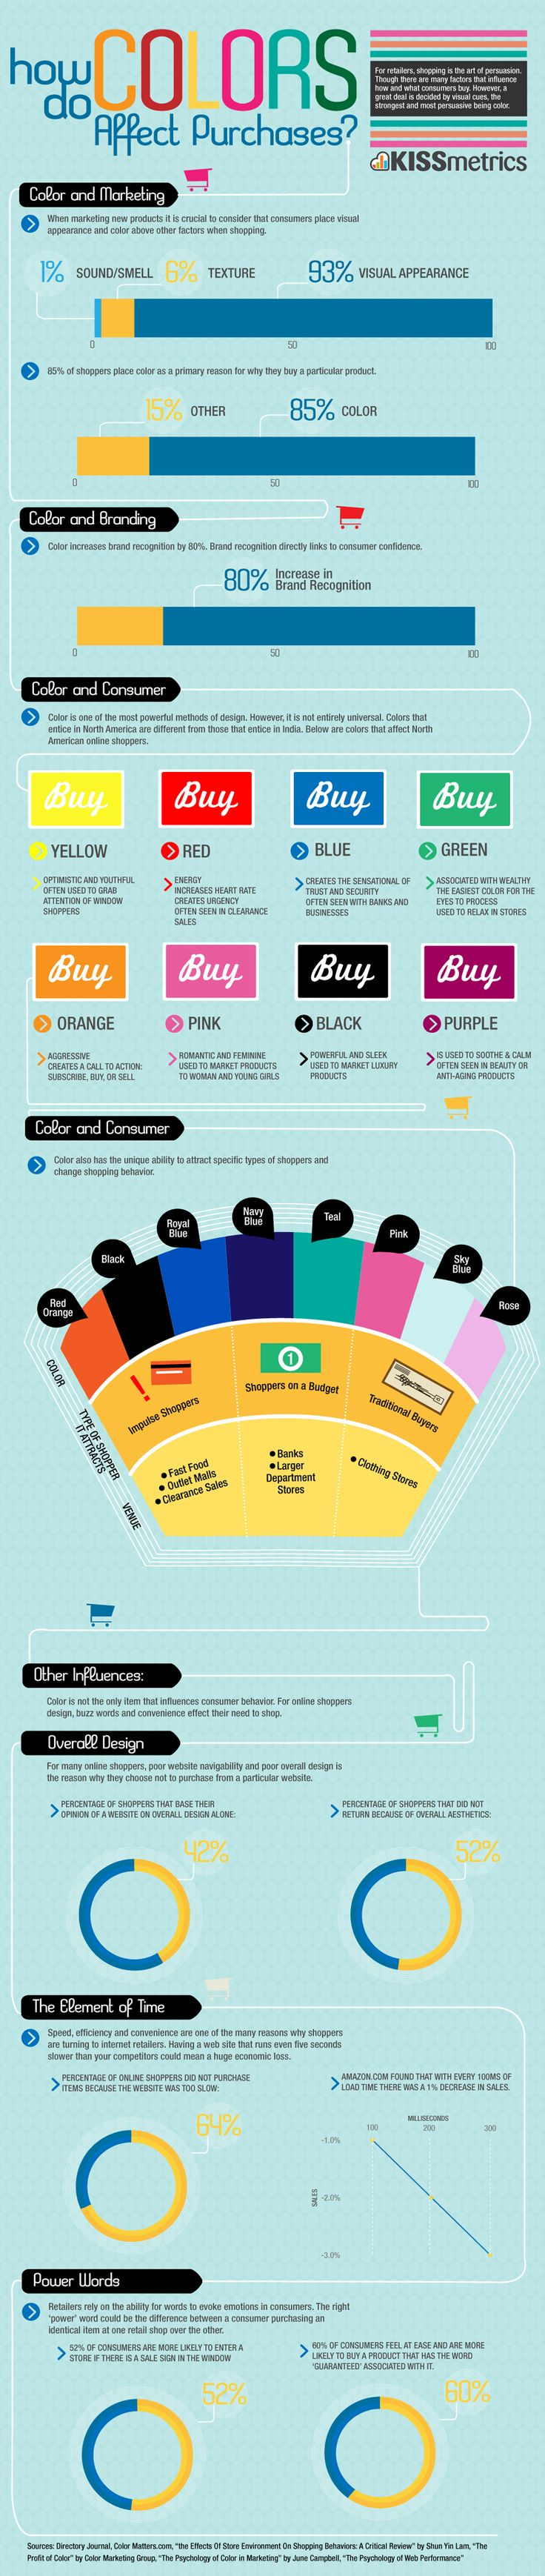 How Do Colors Affect Purchases #Infographic #GraphicDesign - from The Six Ultimate Infographics About Color in Design!  Don't miss the other five!